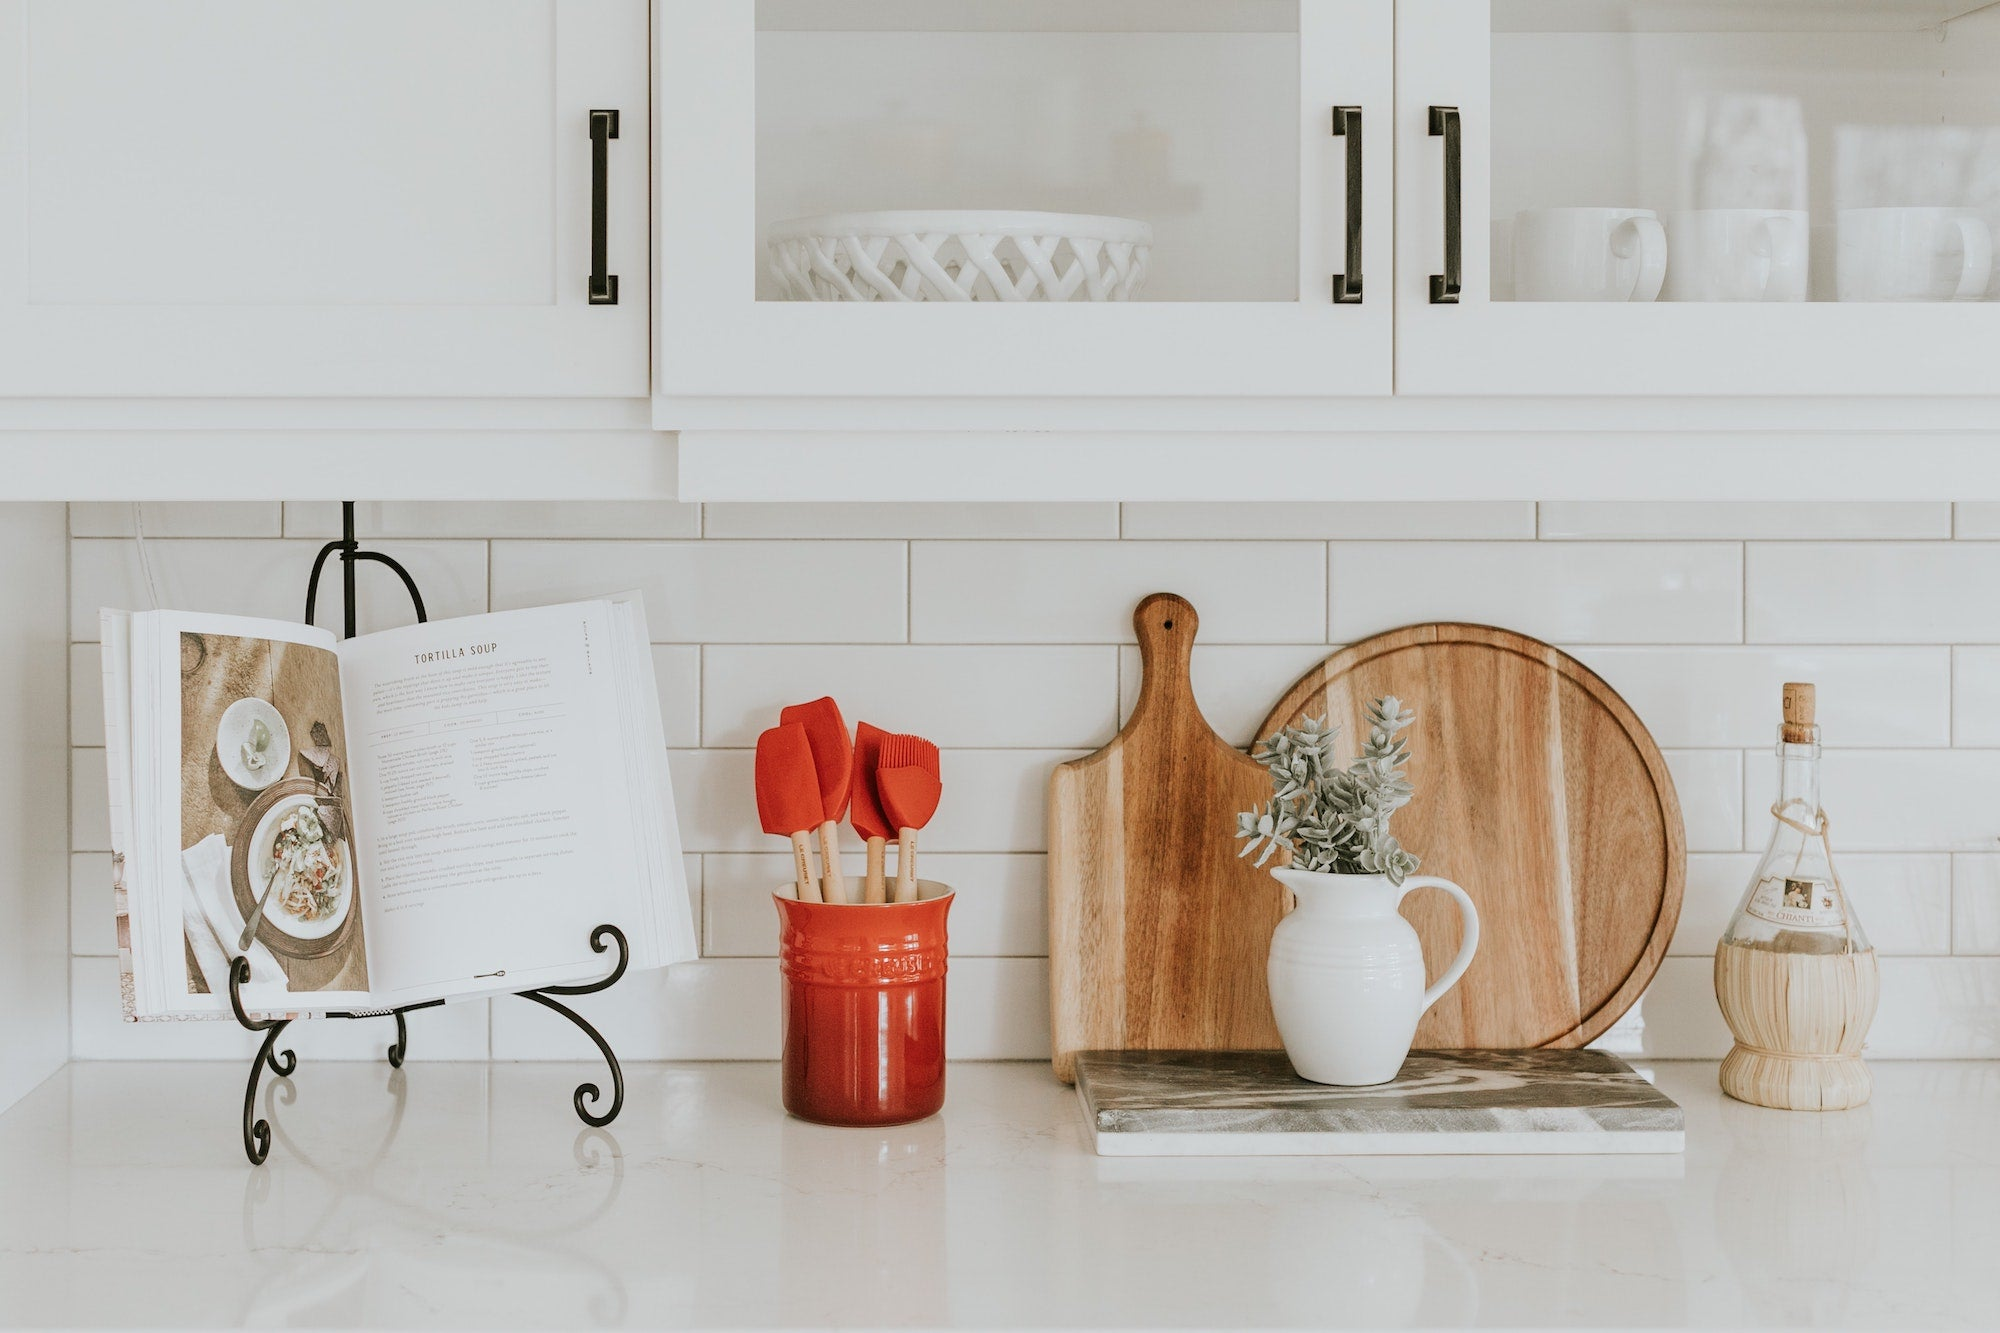 Kitchen counter with accessories | Photo by Becca Tapert on Unsplash